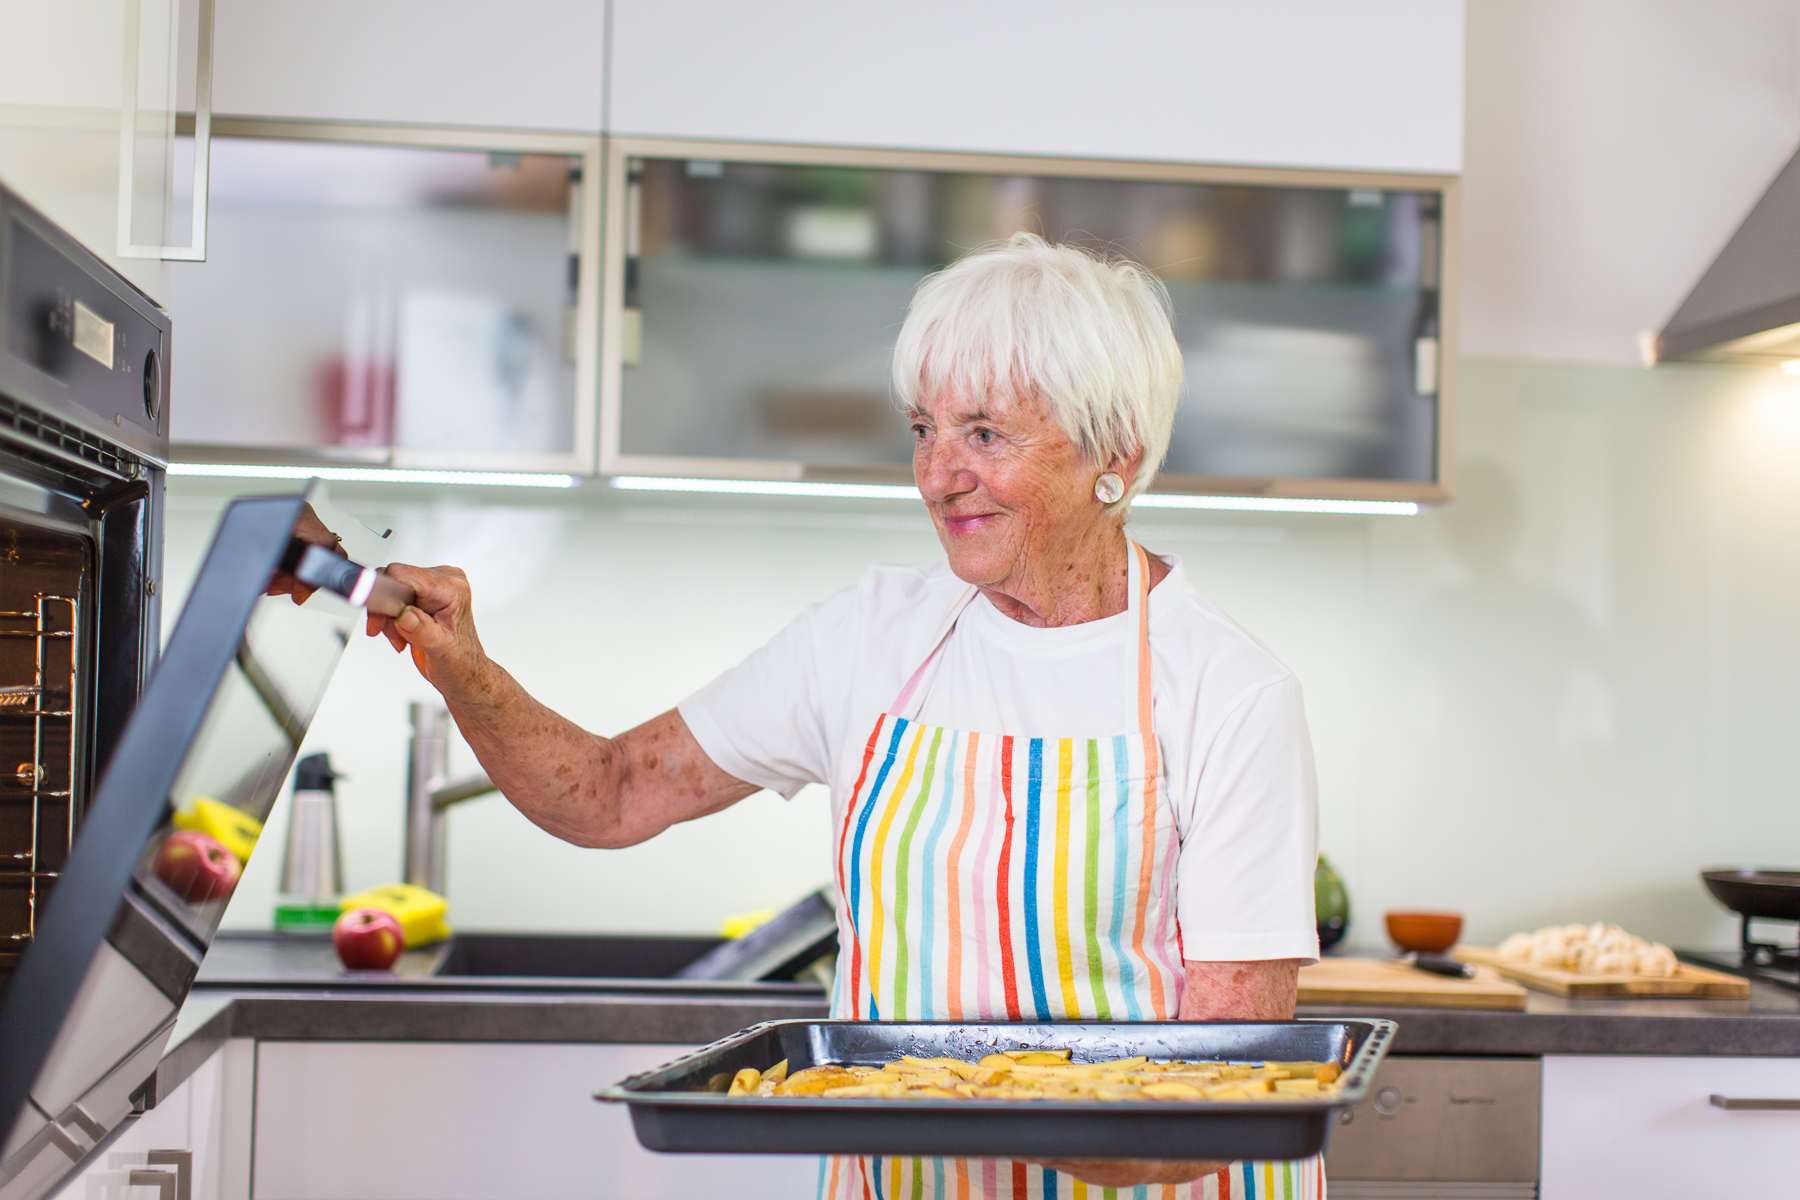 Senior Woman Cooking In The Kitchen   Eating And Cooking Healthy